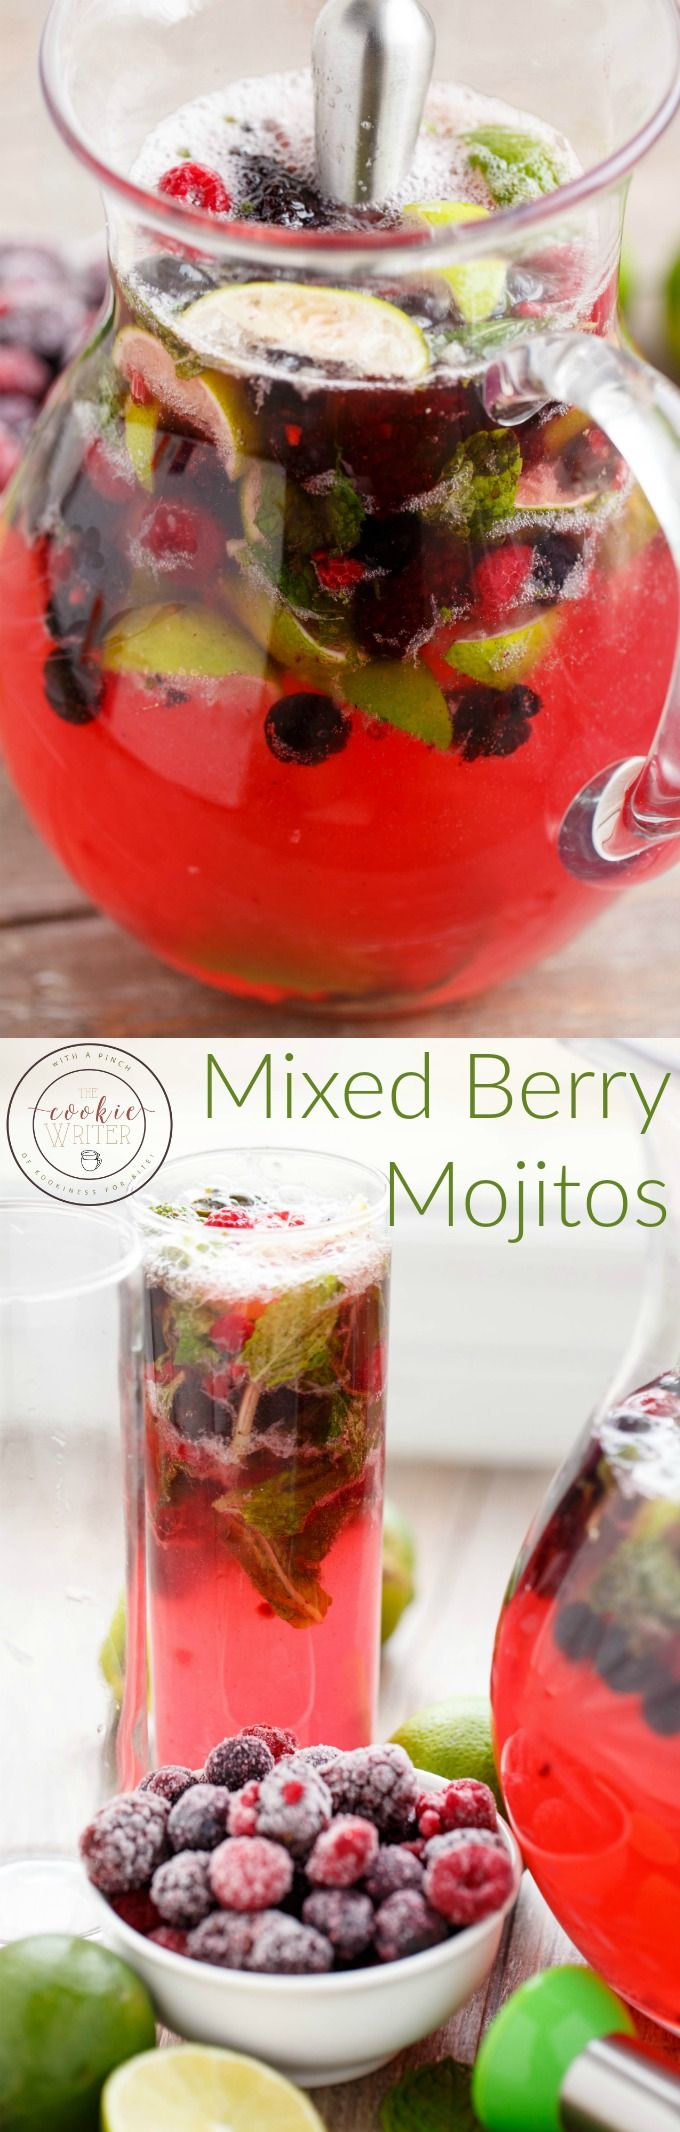 Mixed Berry Mojitos   http://thecookiewriter.com   @thecookiewriter   #drink